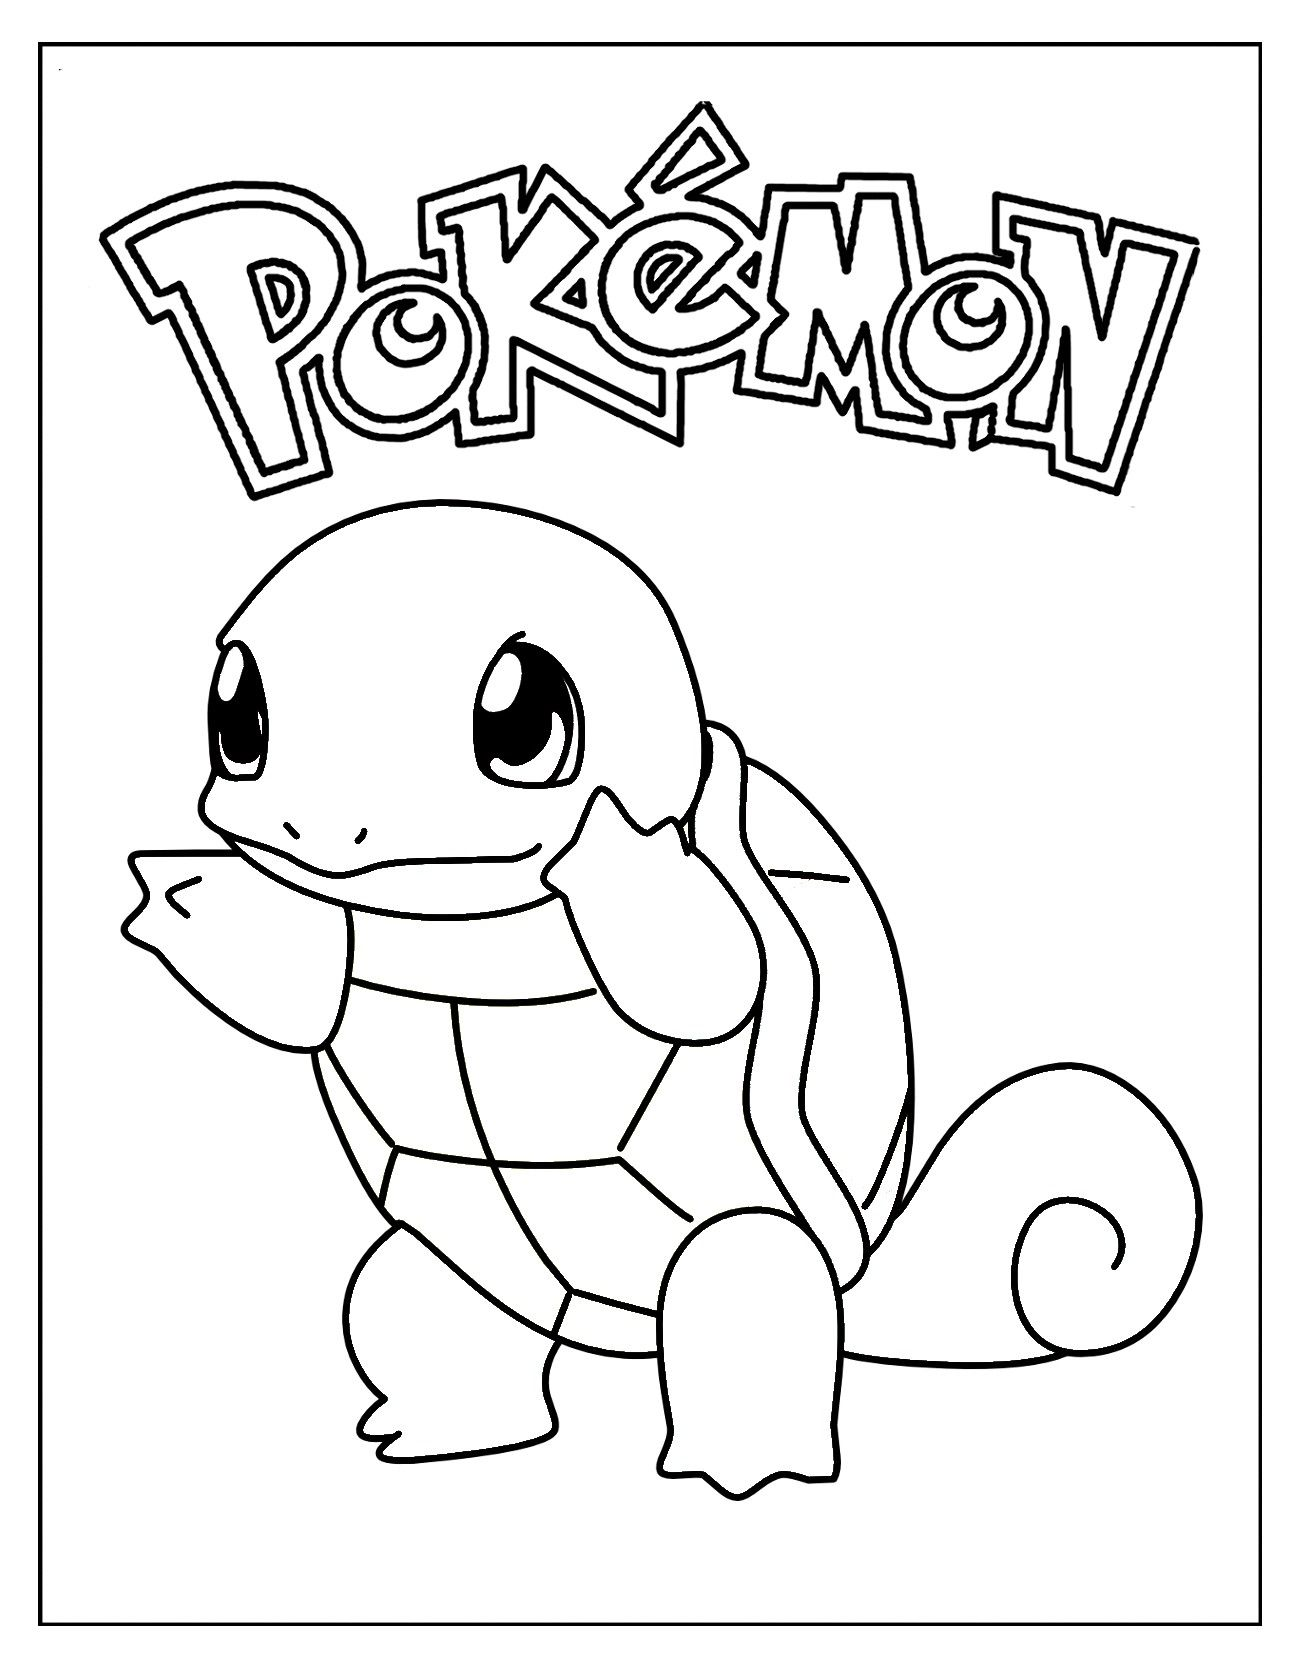 squirtle coloring pages # 1